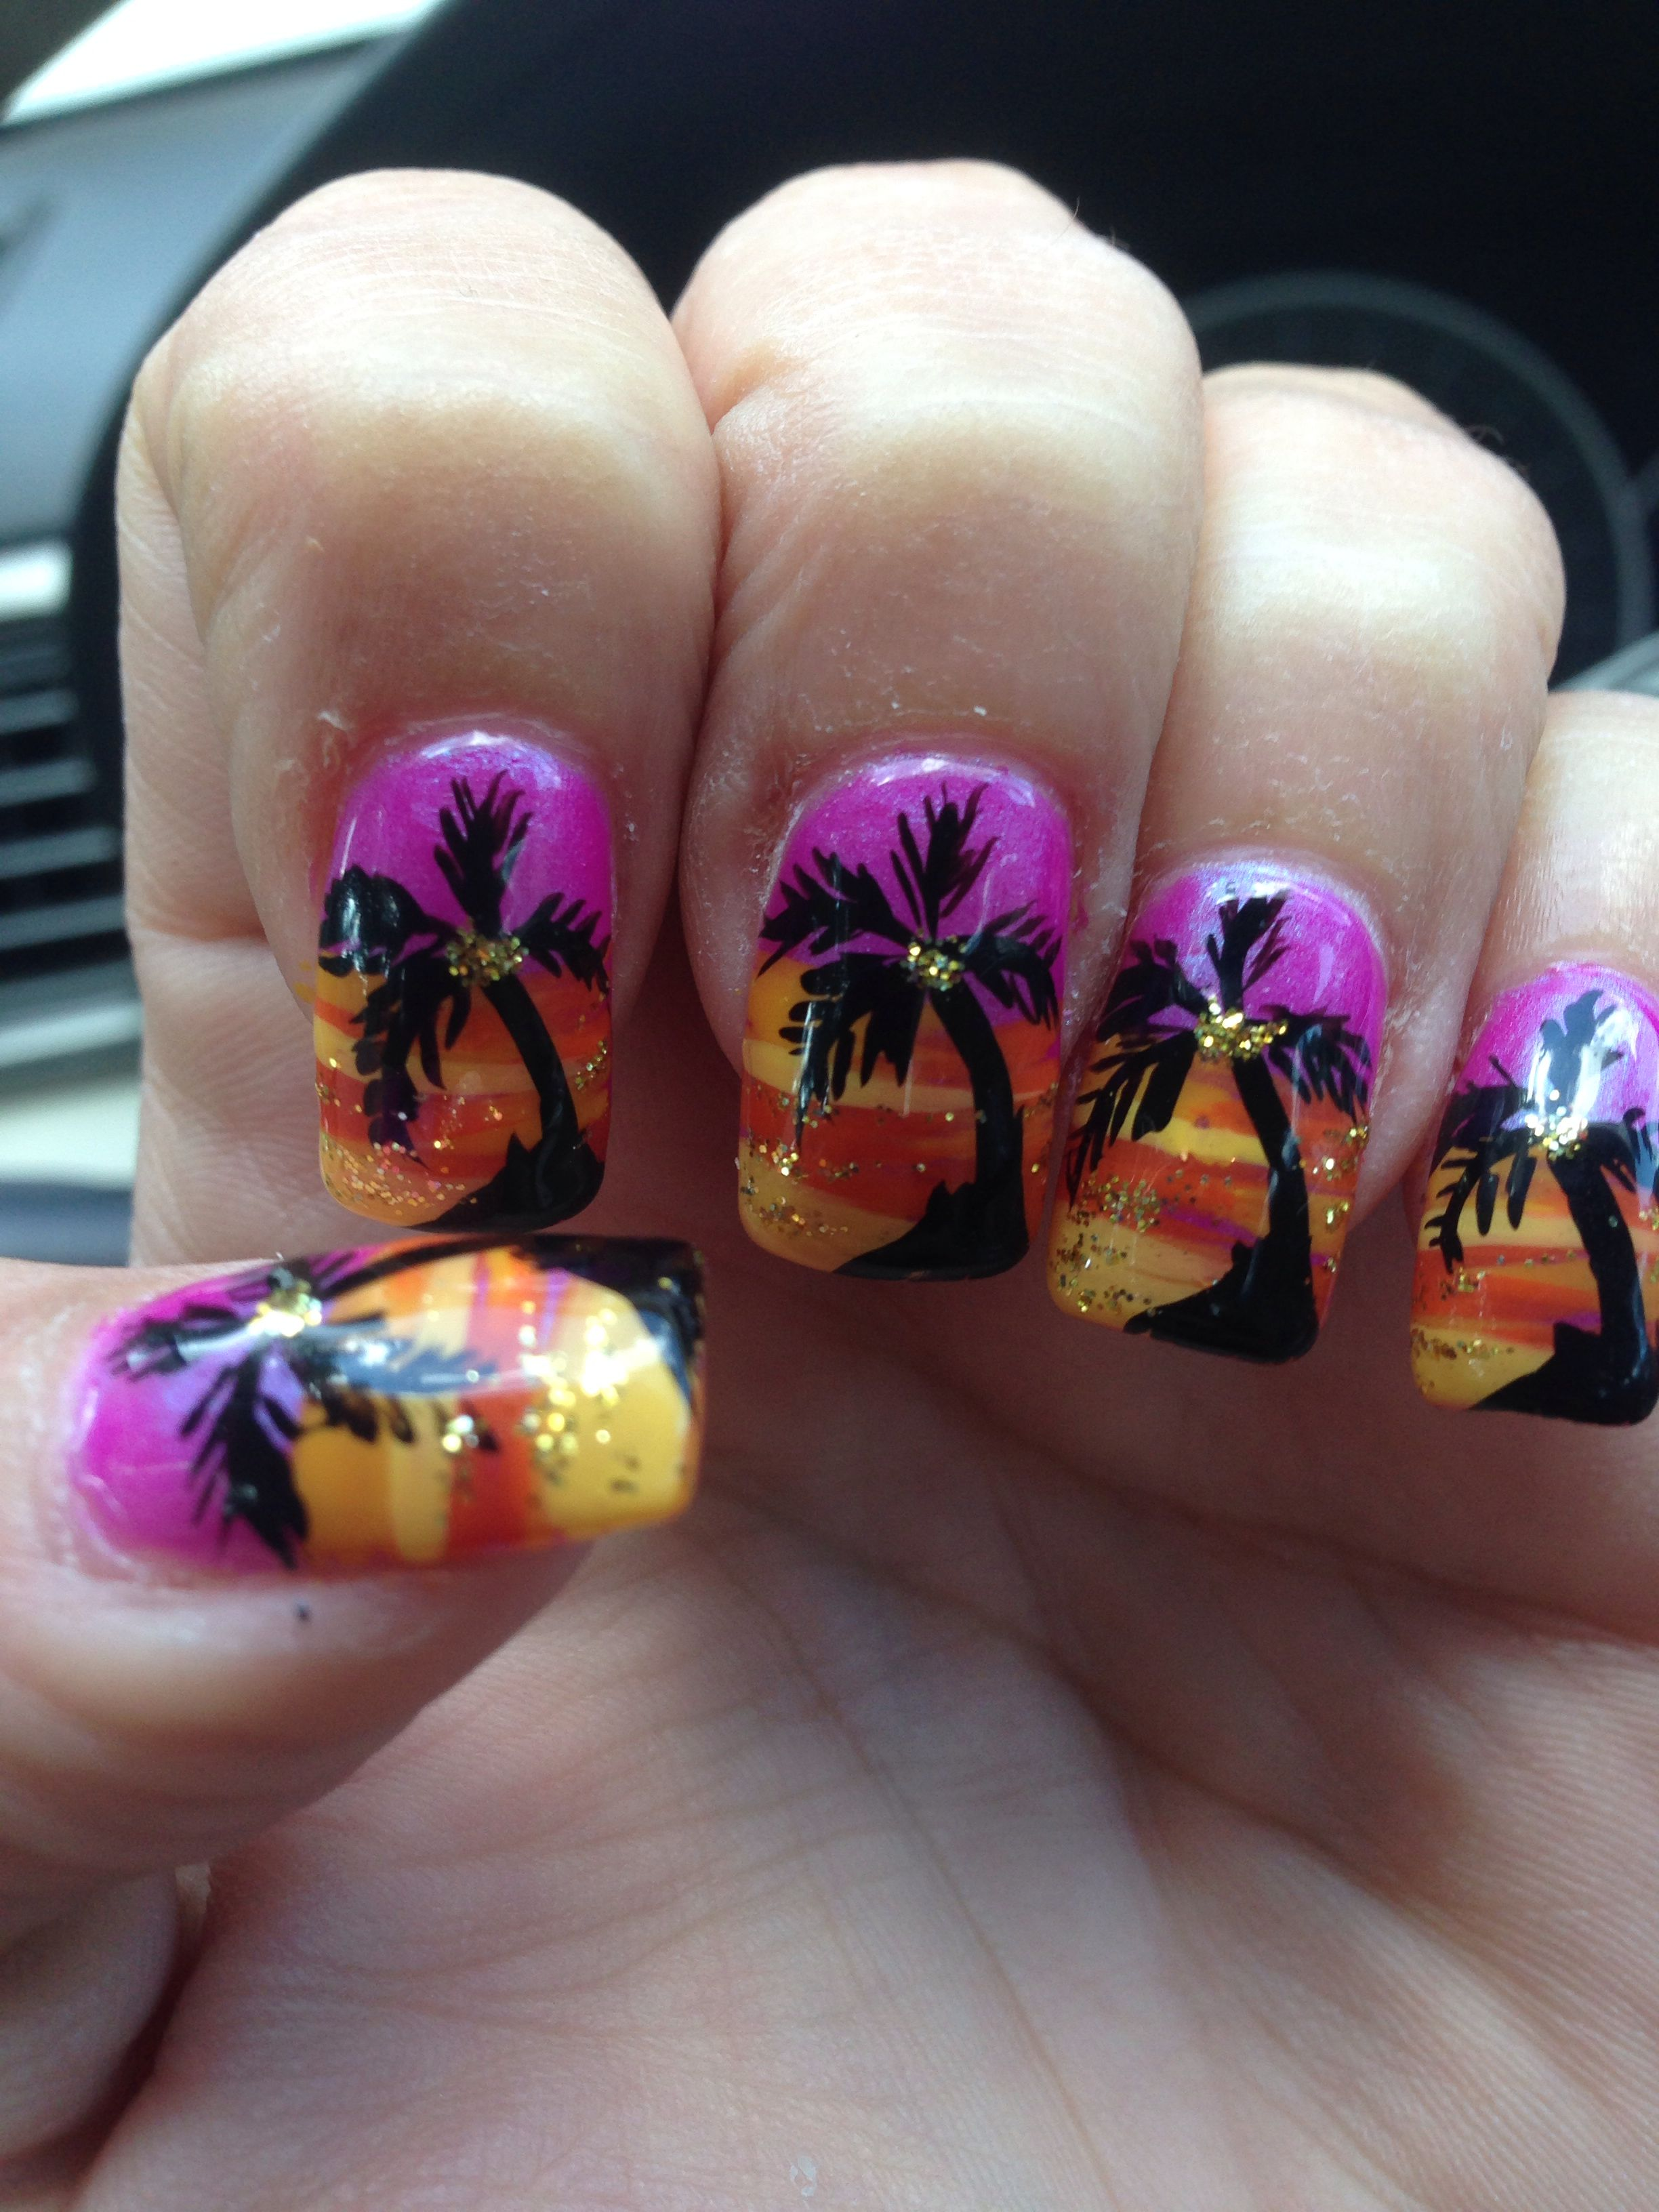 Fantastic Nail Art By Christine At Glamour Nails My Favorite Ever